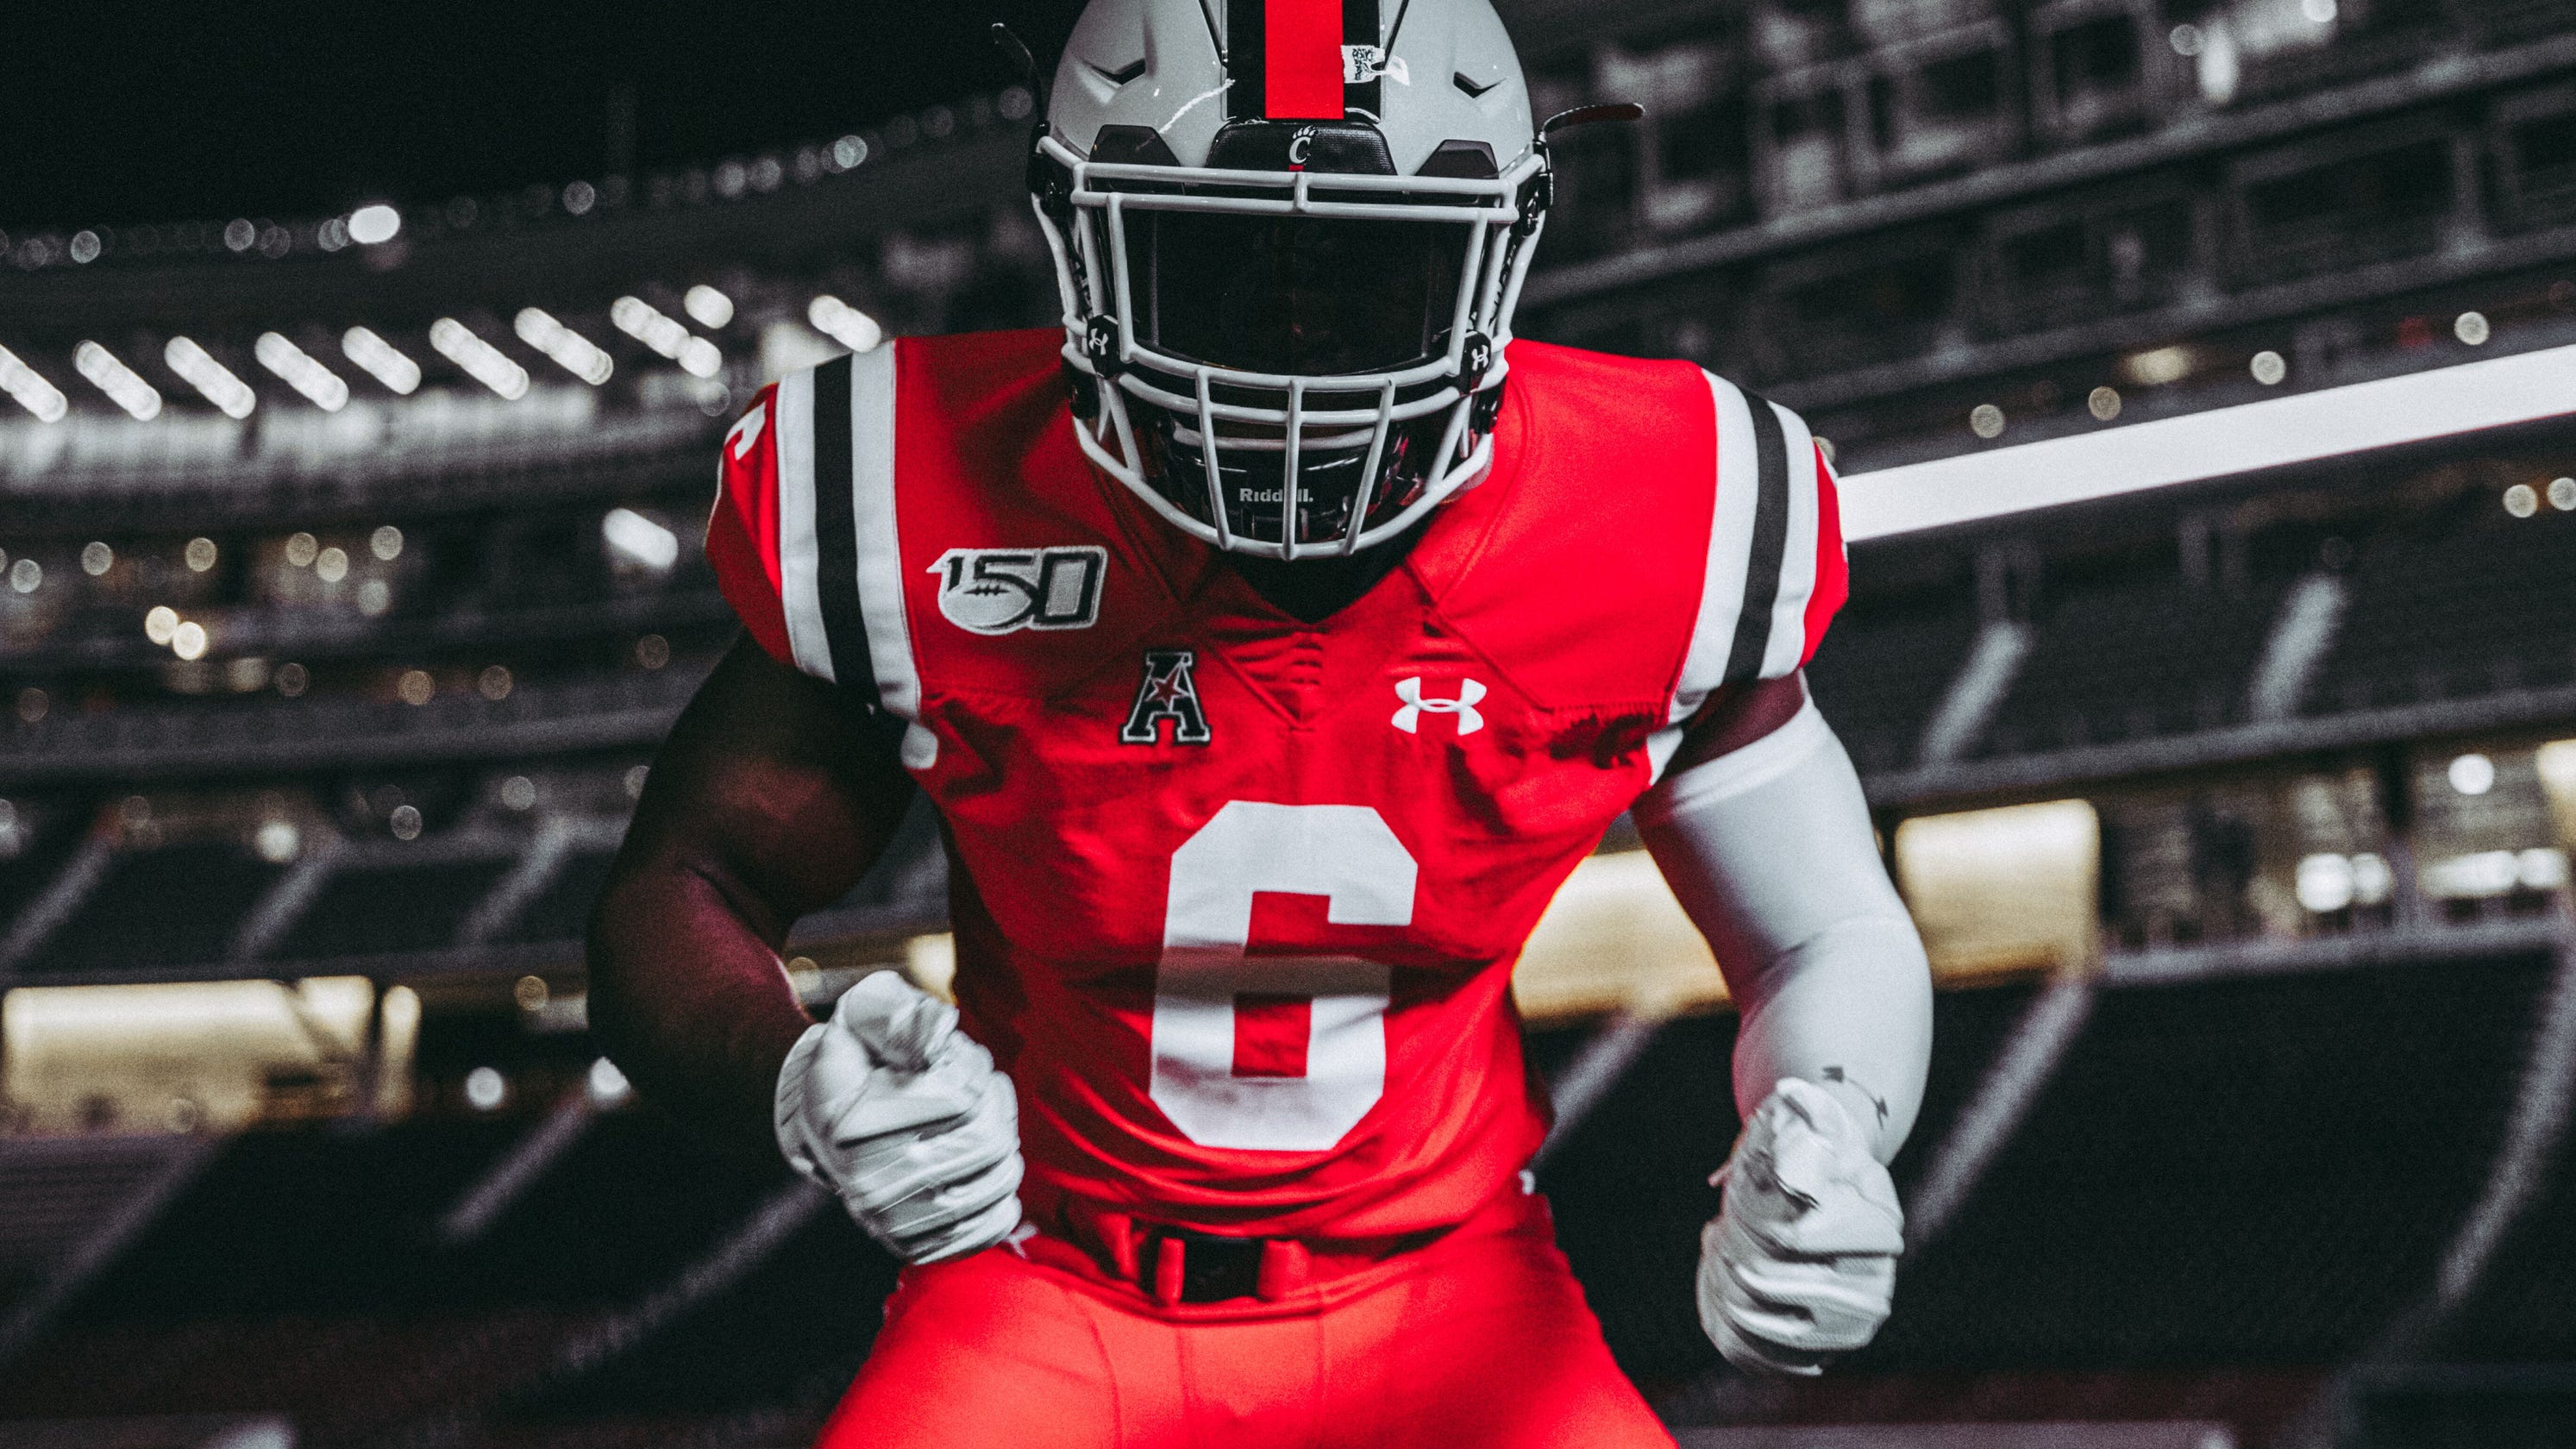 low priced e6d16 06da7 First look: UC football reveals Under Armor 2019 throwback ...